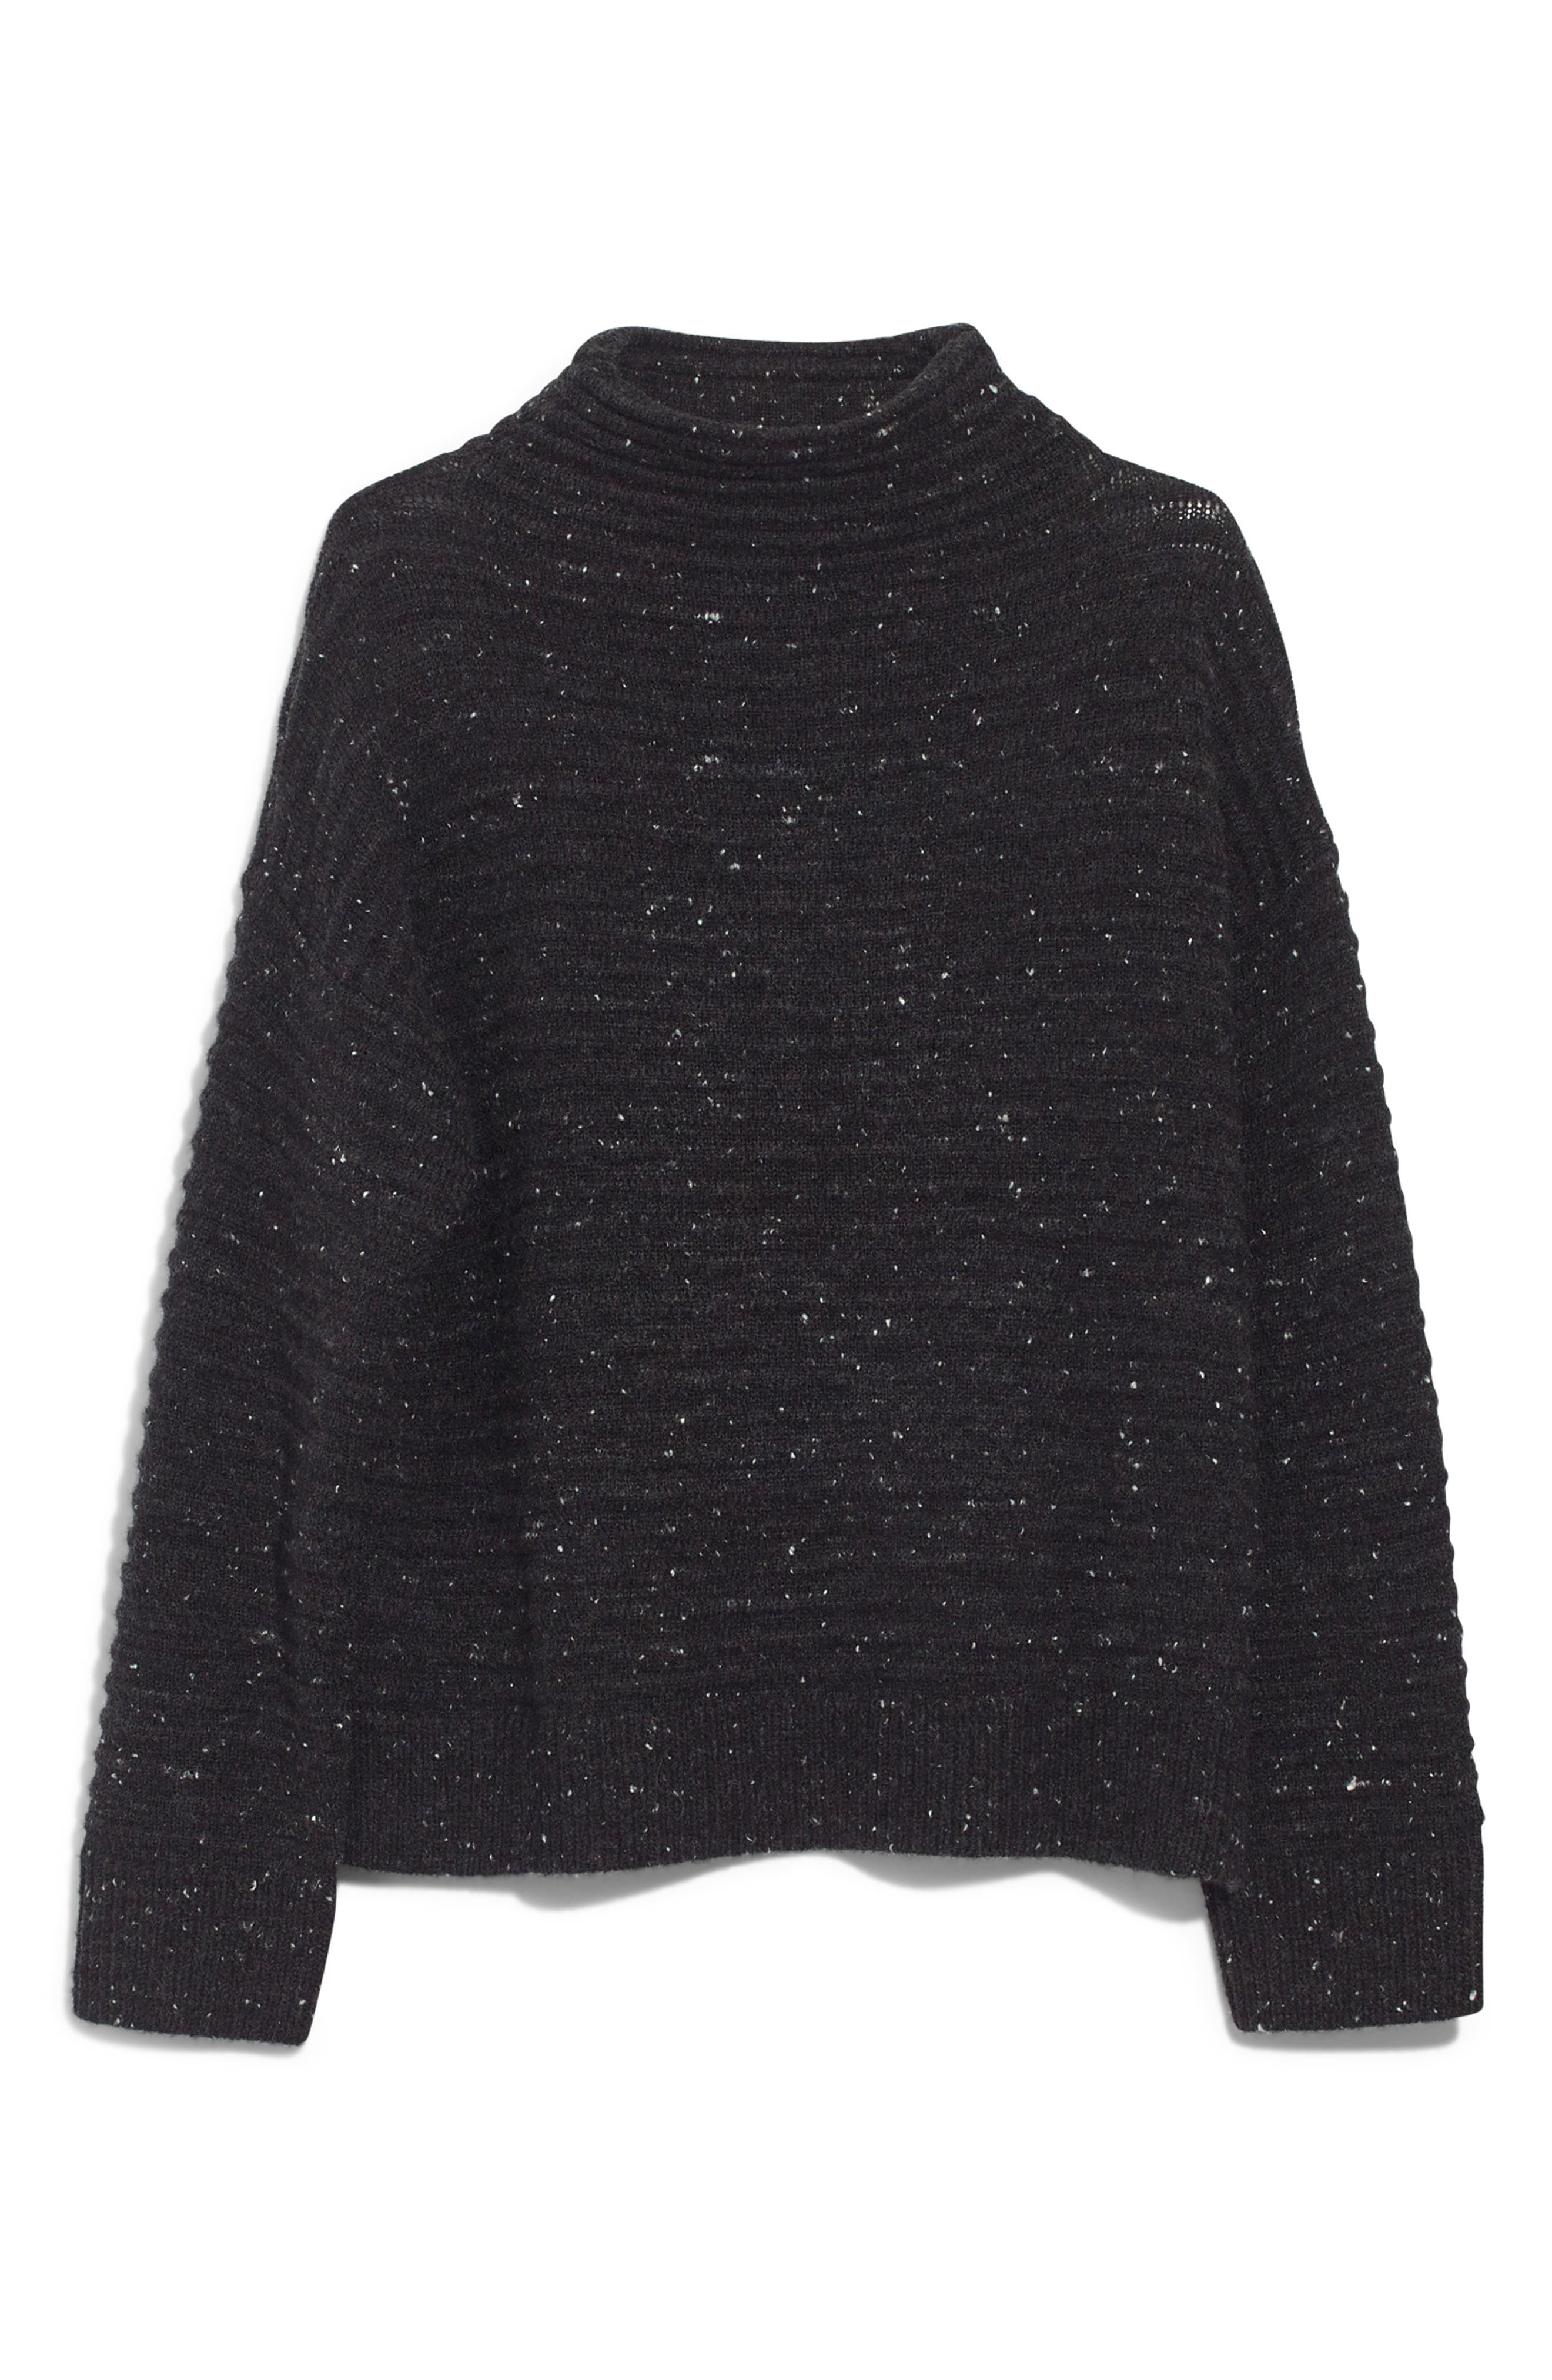 MADEWELL, Belmont Donegal Mock Neck Sweater, Alternate thumbnail 6, color, 020